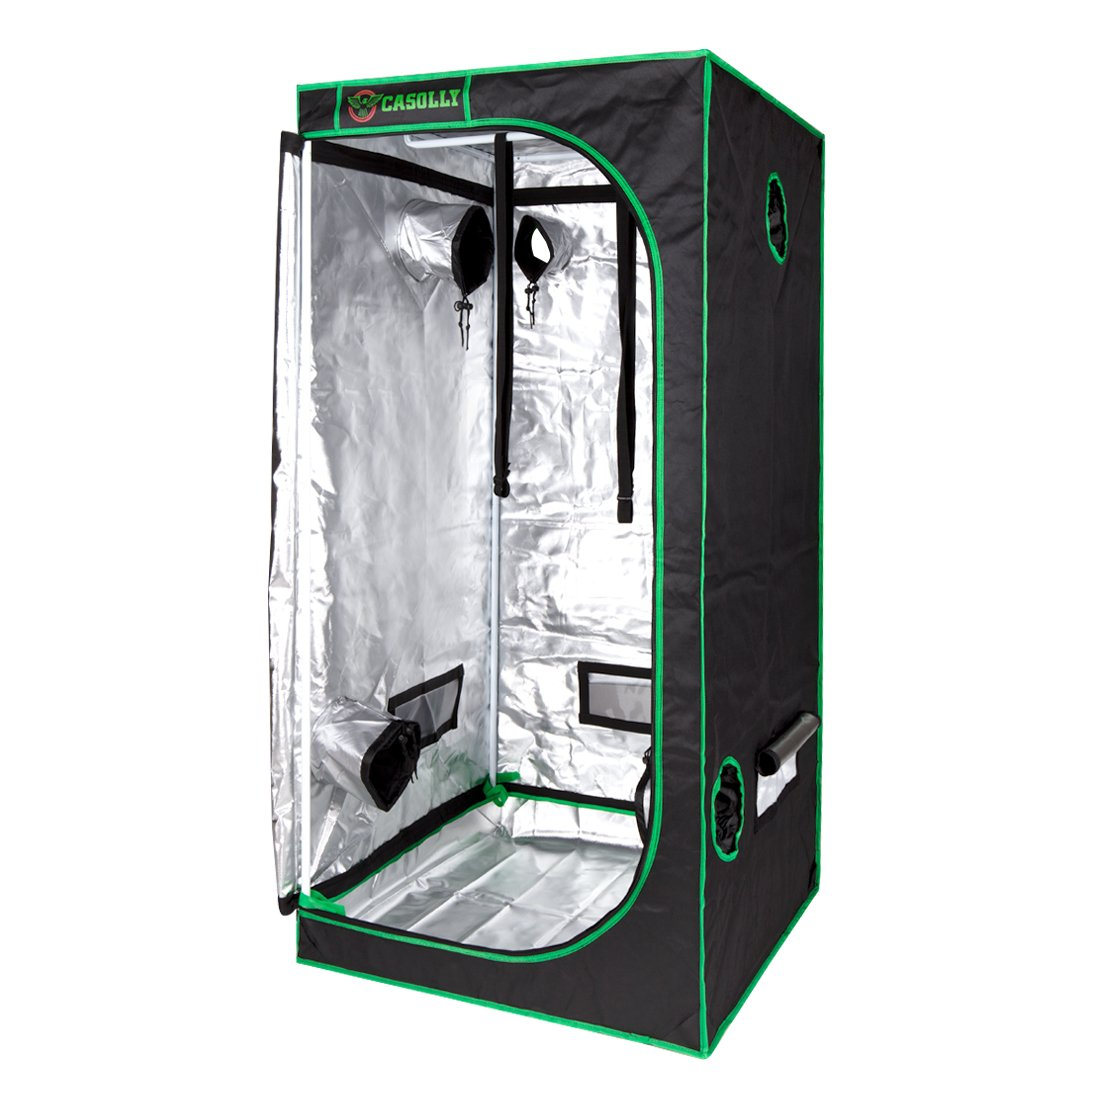 Casolly 24''x24''x56'' Horticulture Grow Tent for Indoor Plant Growing Tents Mylar Hydroponic Grow Room